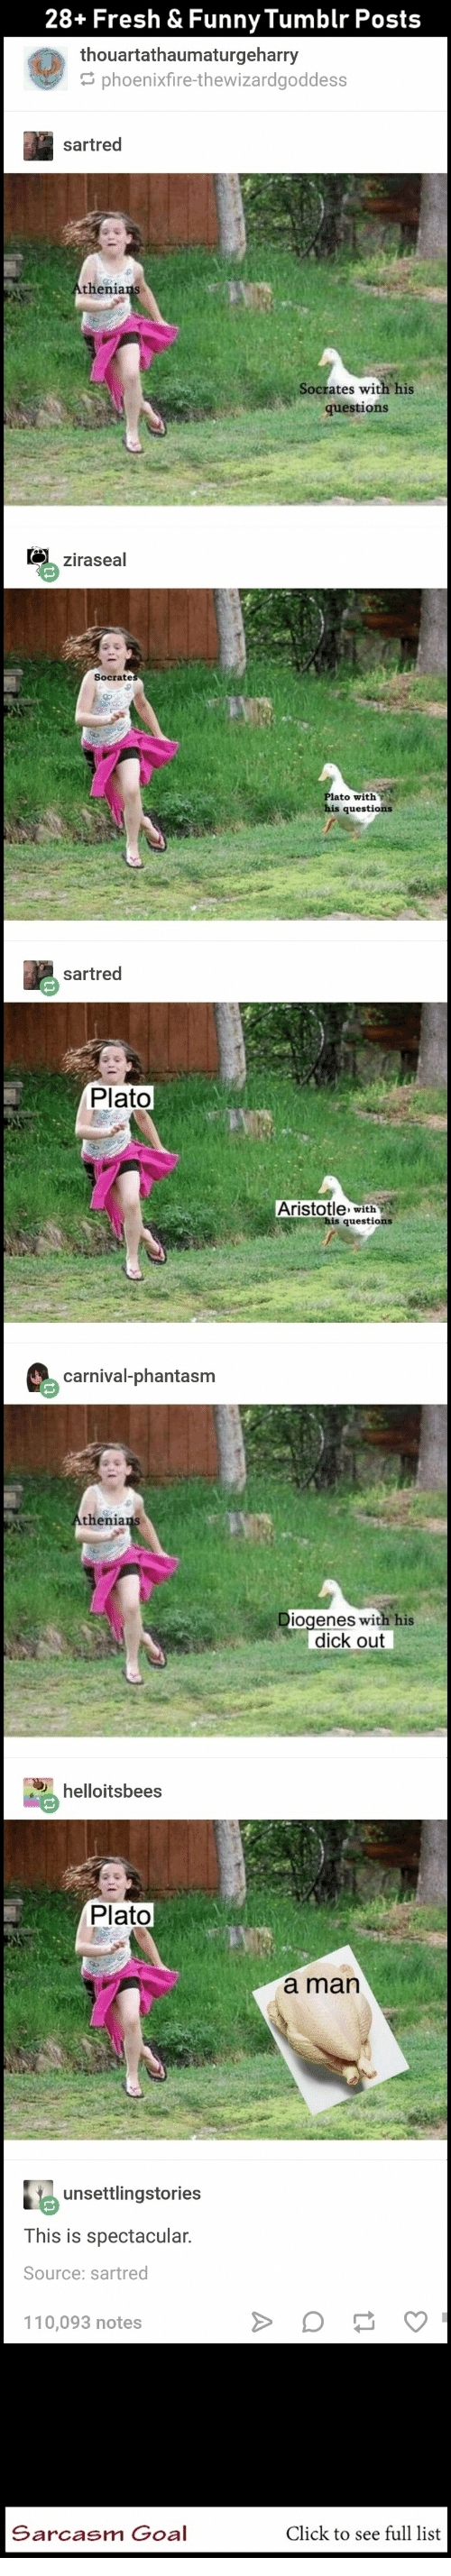 Click, Fresh, and Funny: 28+ Fresh & Funny Tumblr Posts  thouartathaumaturgeharry  phoenixfire-thewizardgoddess  sartred  s with his  questions  ziraseal  with  sartred  Plato  Aristotle with  carnival-phantasm  thenia  enes with his  dick out  helloitsbees  Plato  a man  unsettlingstories  This is spectacular  Source: sartred  10,093 notes  Sarcasm Goal  Click to see full list